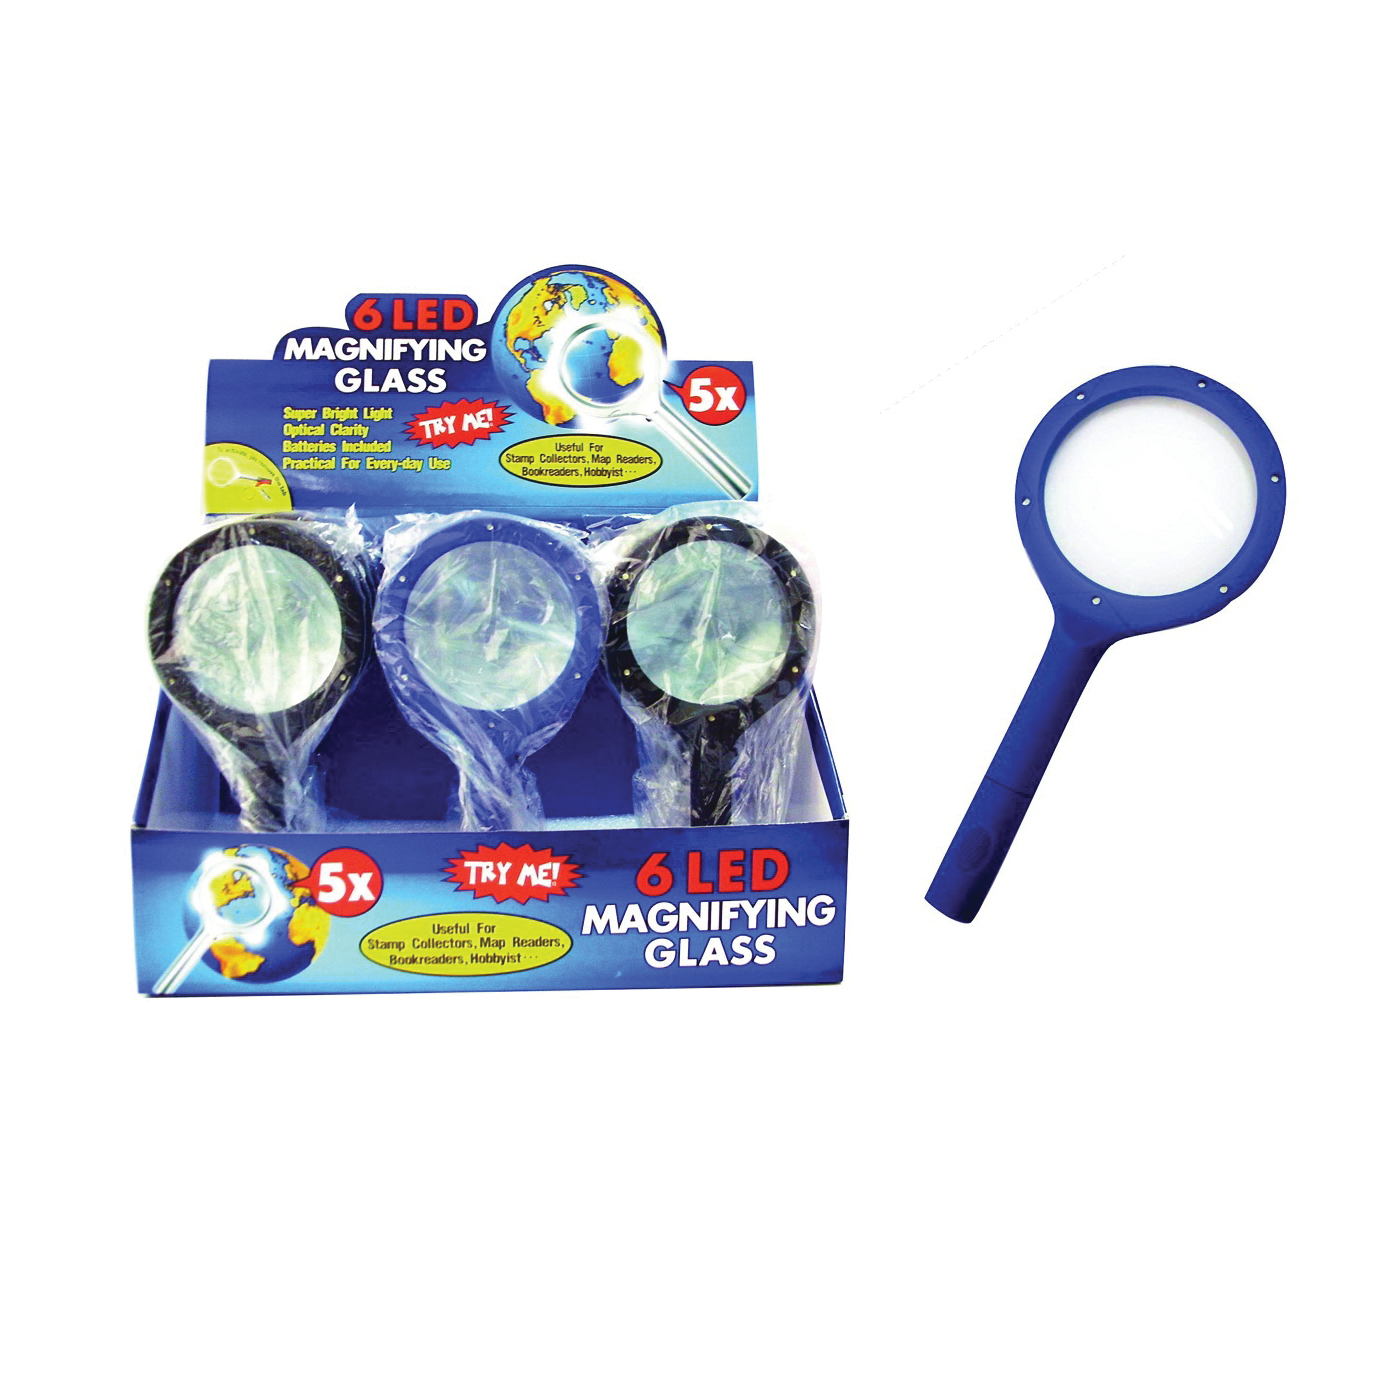 Picture of Diamond Visions 08-0260 Magnifying Glass, 5X Magnification